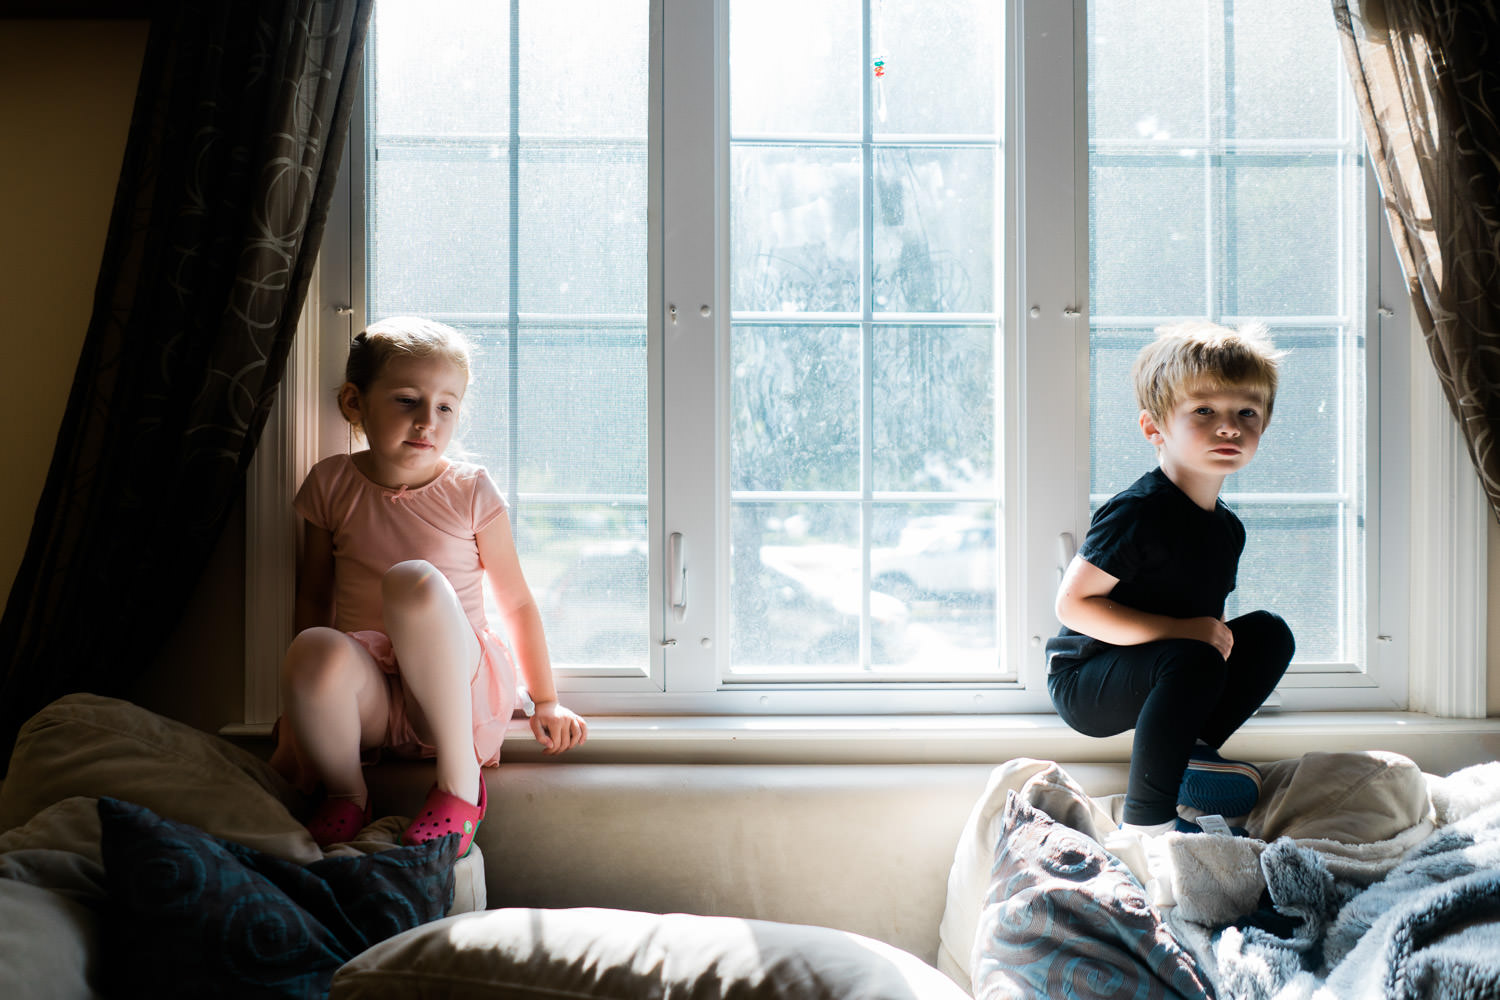 Two children dressed in dancewear perch on the back of a couch.